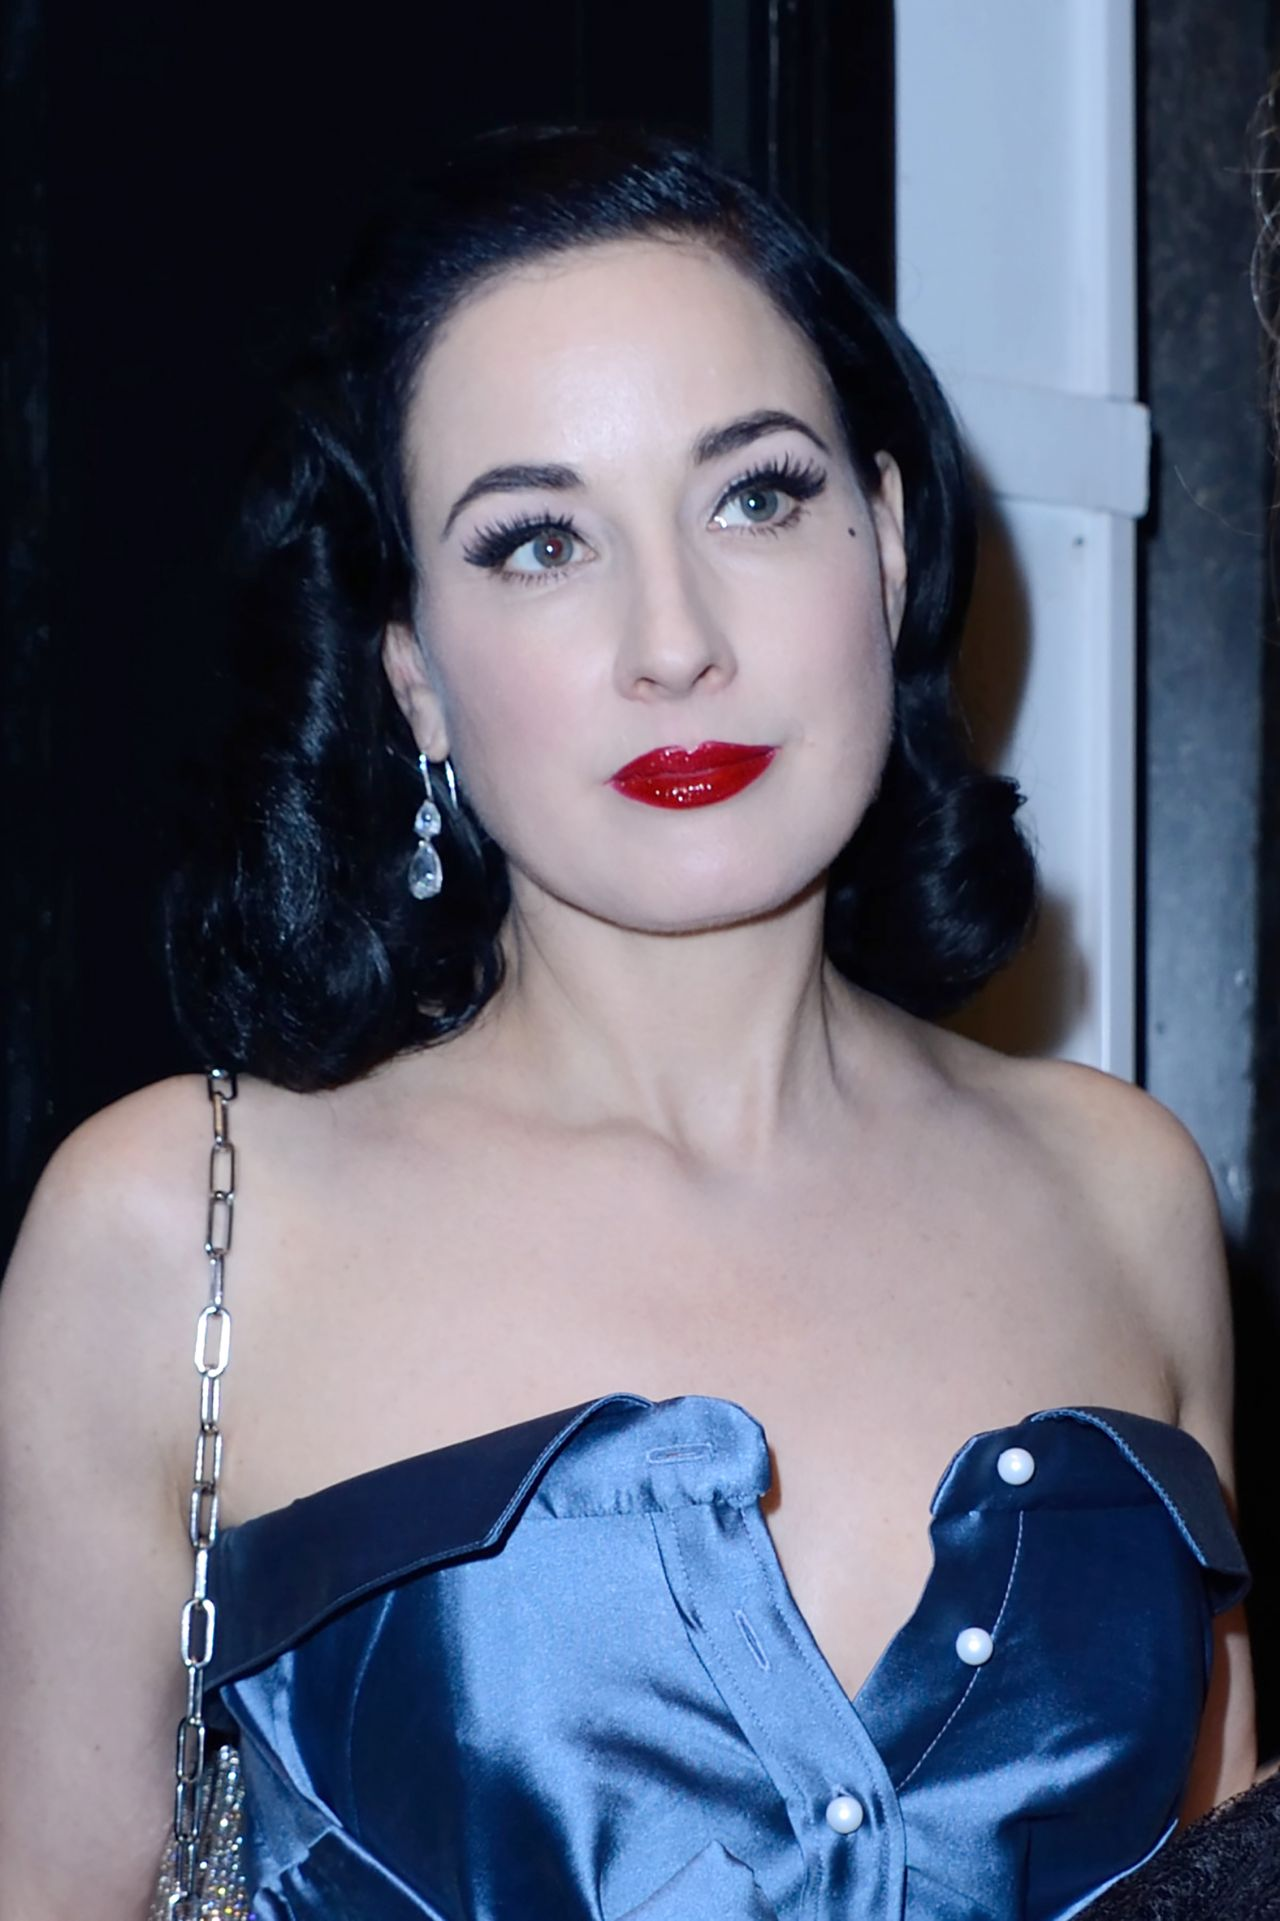 6d3f44bb6e6b Dita Von Teese – Alexis Mabille Fashion Show in Paris 09 29 2017